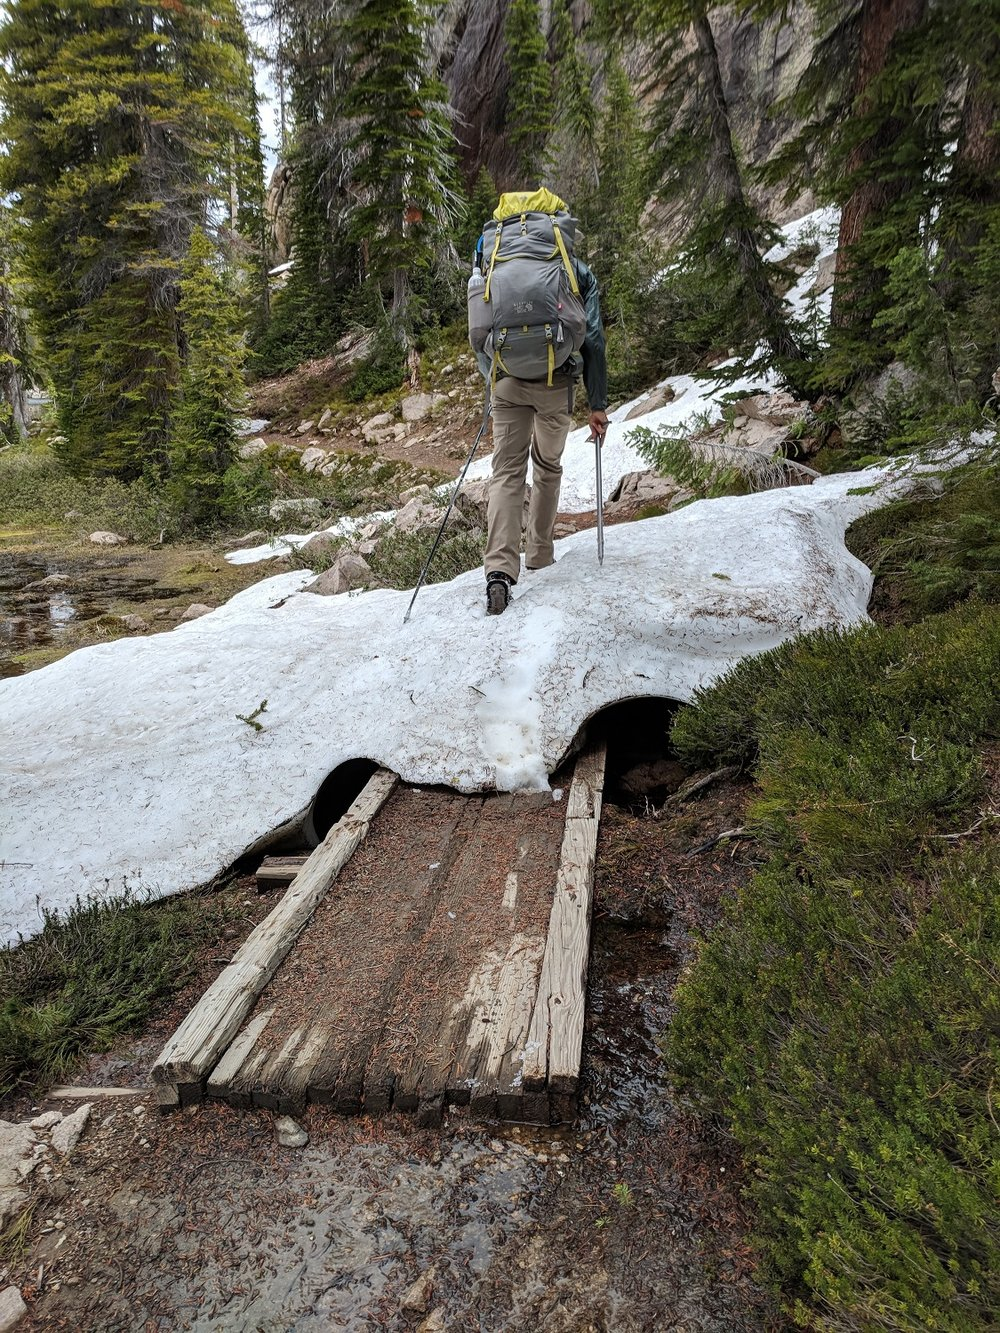 Andrew crossing a snow bridge over a wooden bridge over the soppy ground at the edges of Imogene Lake's marshy inlet